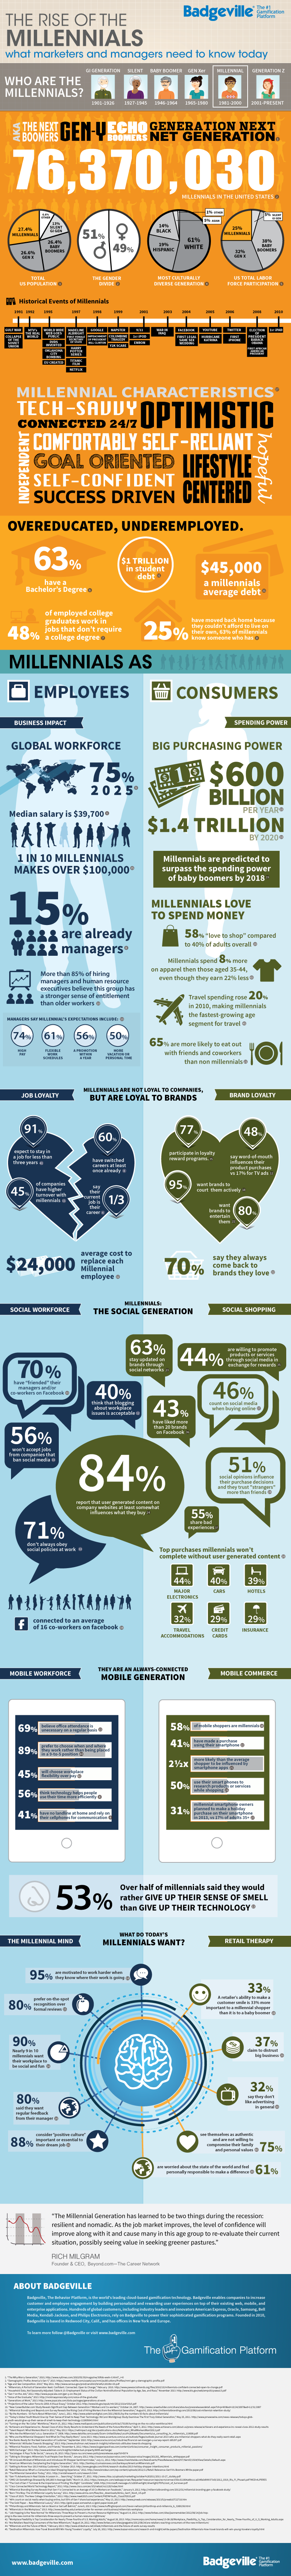 The-Rise-of-the-Millennials-infographic_1